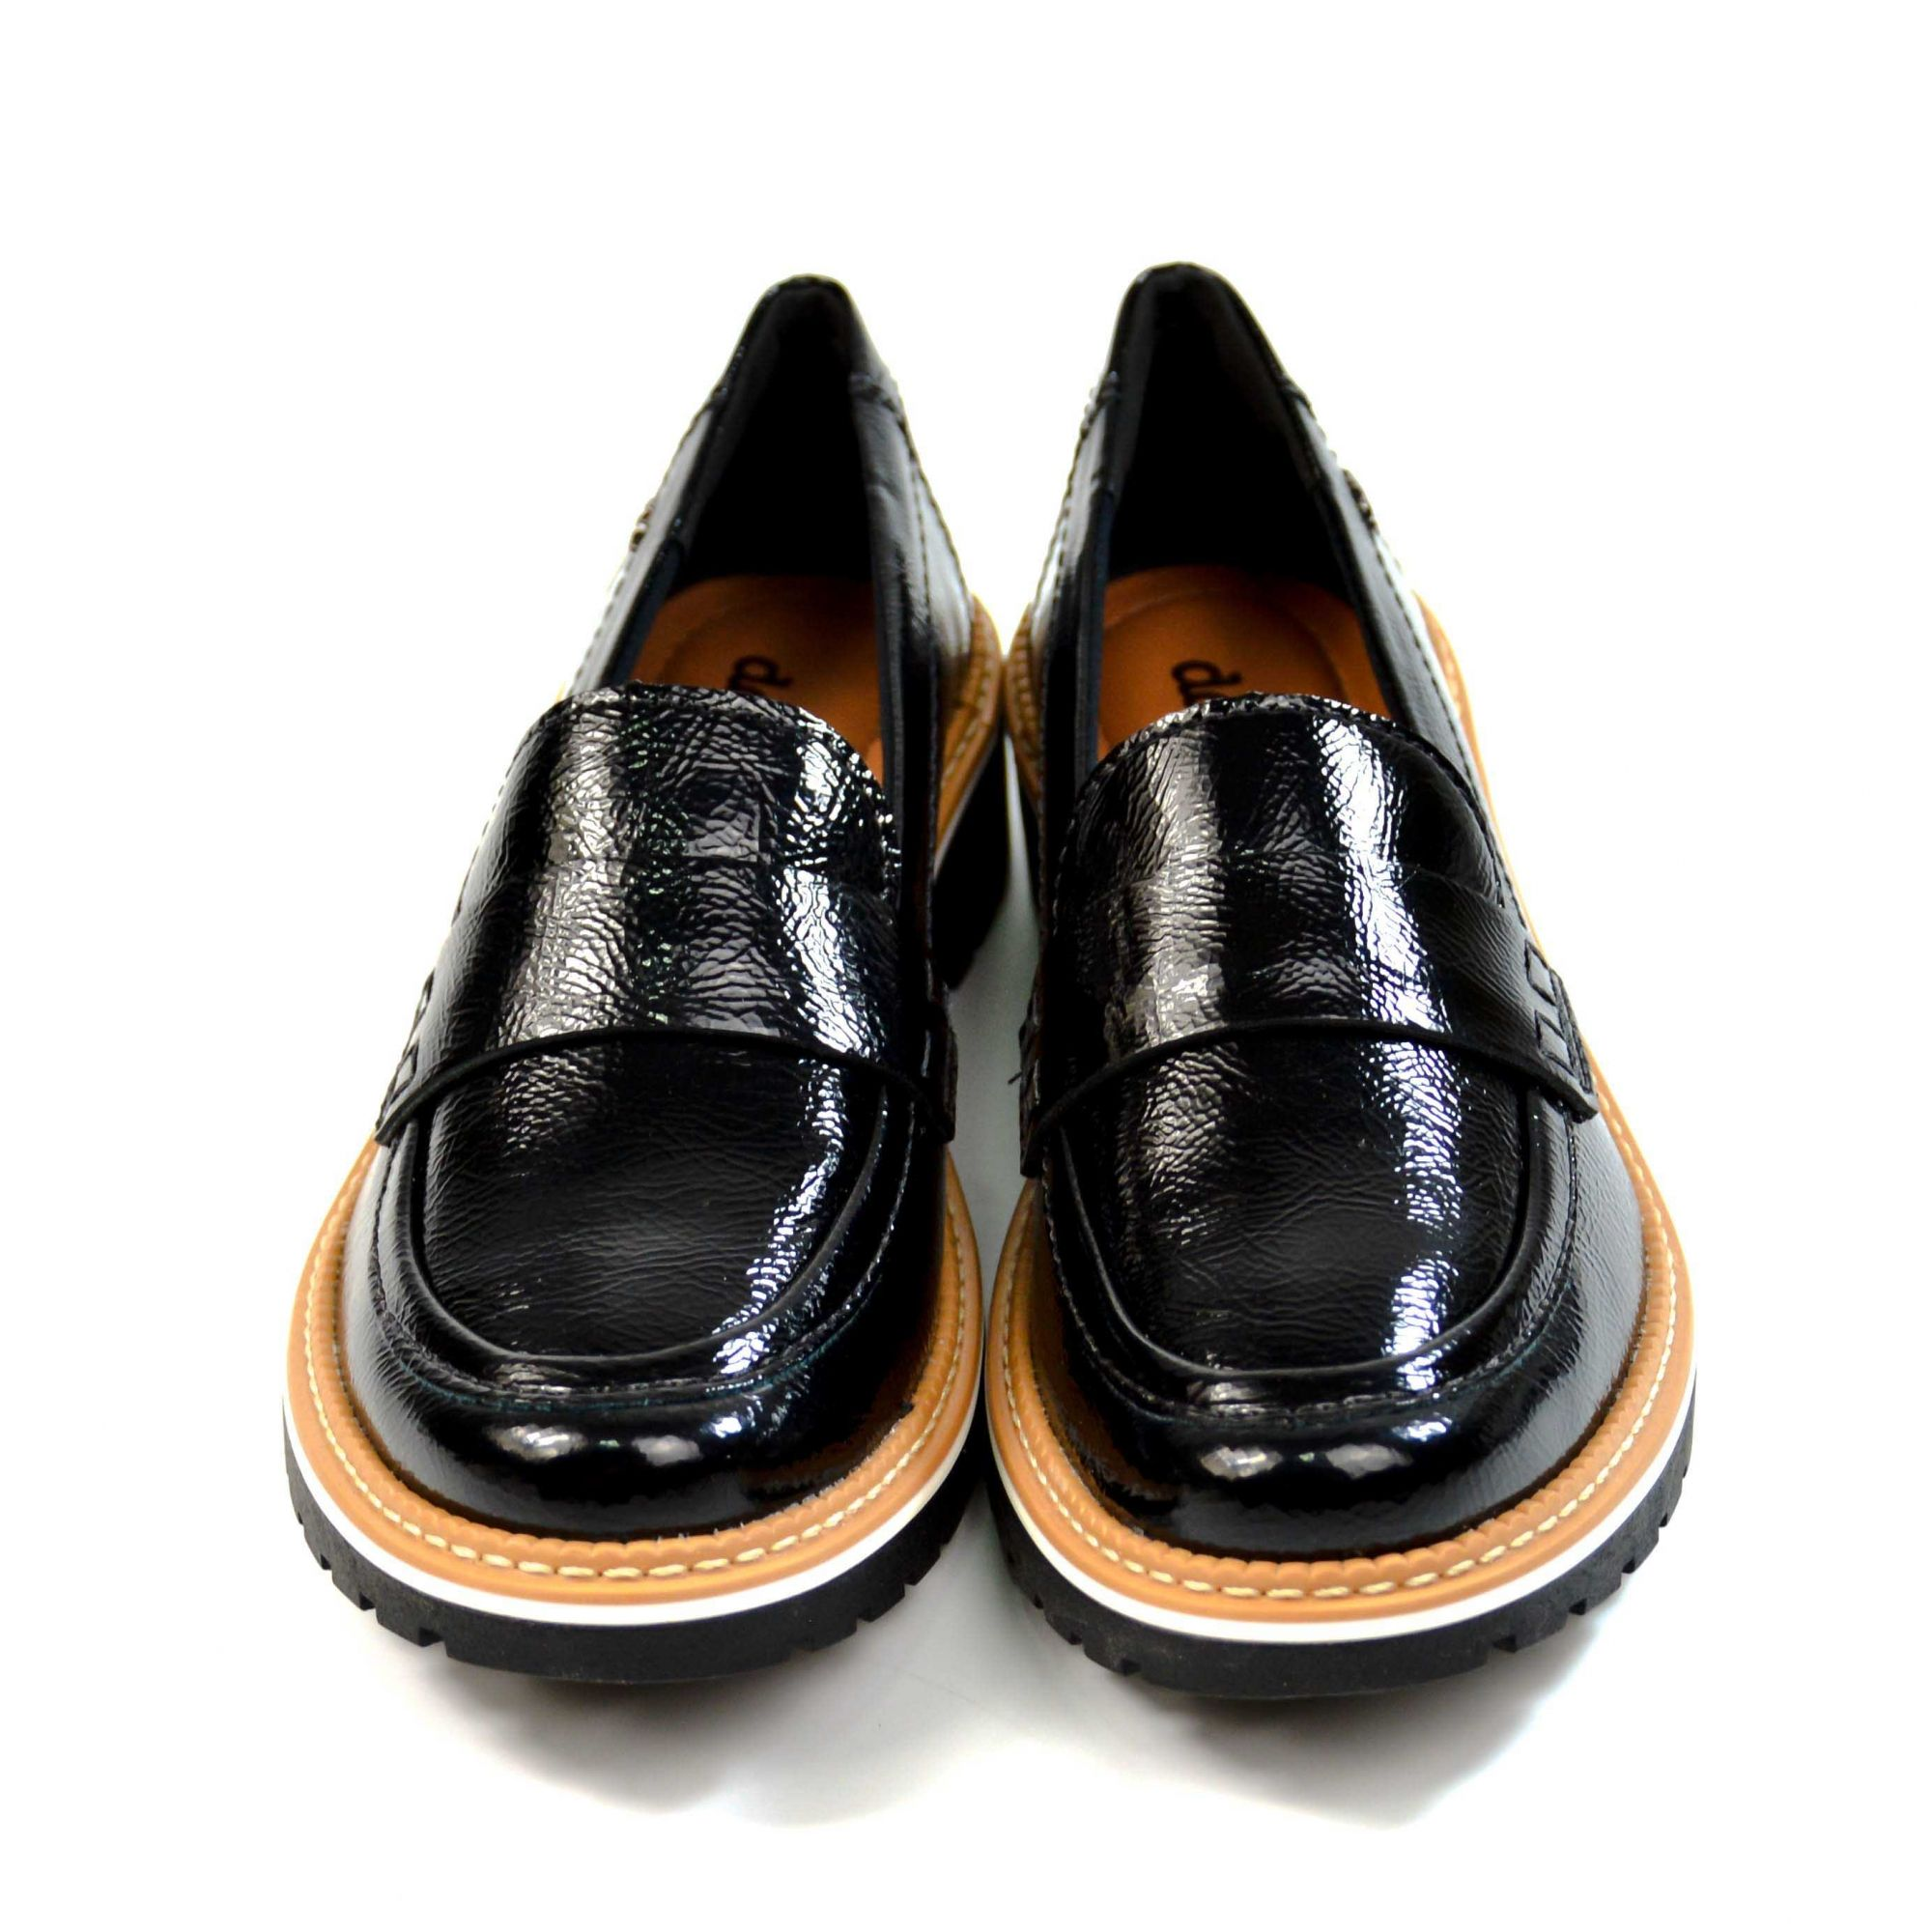 E> MOCASSIM B8462 PRETO FOLLOW DAKOTA 15802